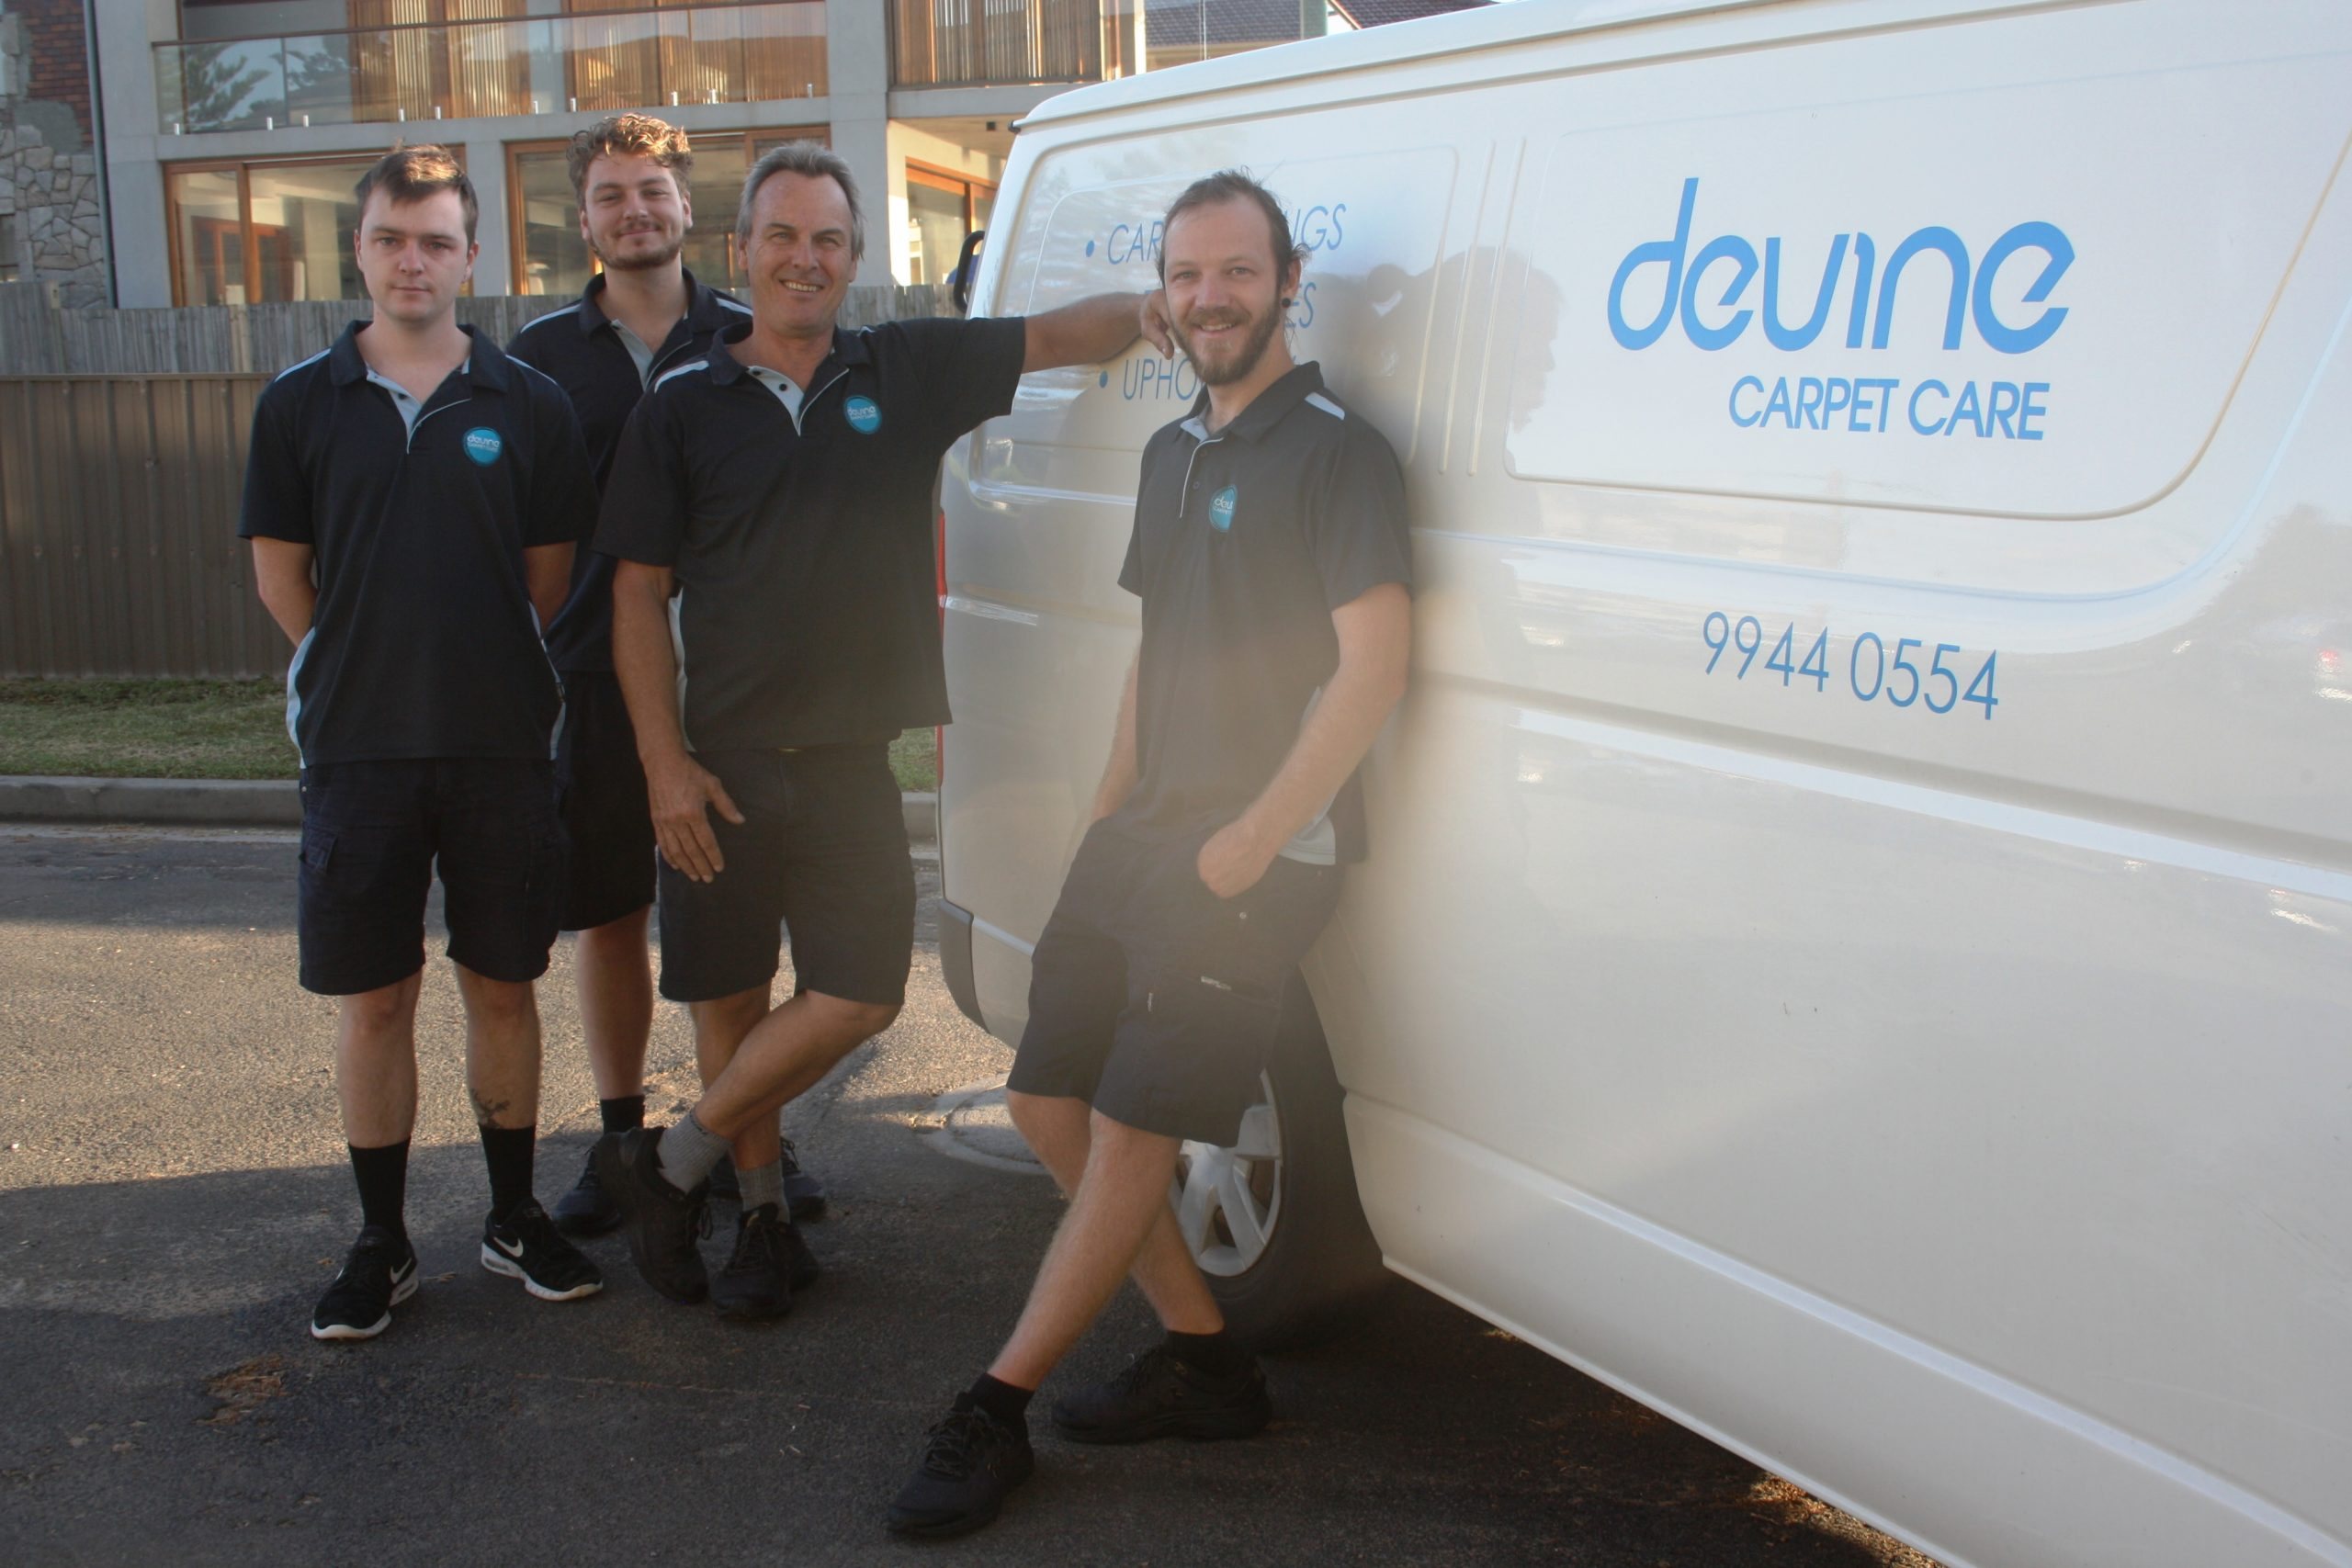 Devine Carpet Care Cleaning Team